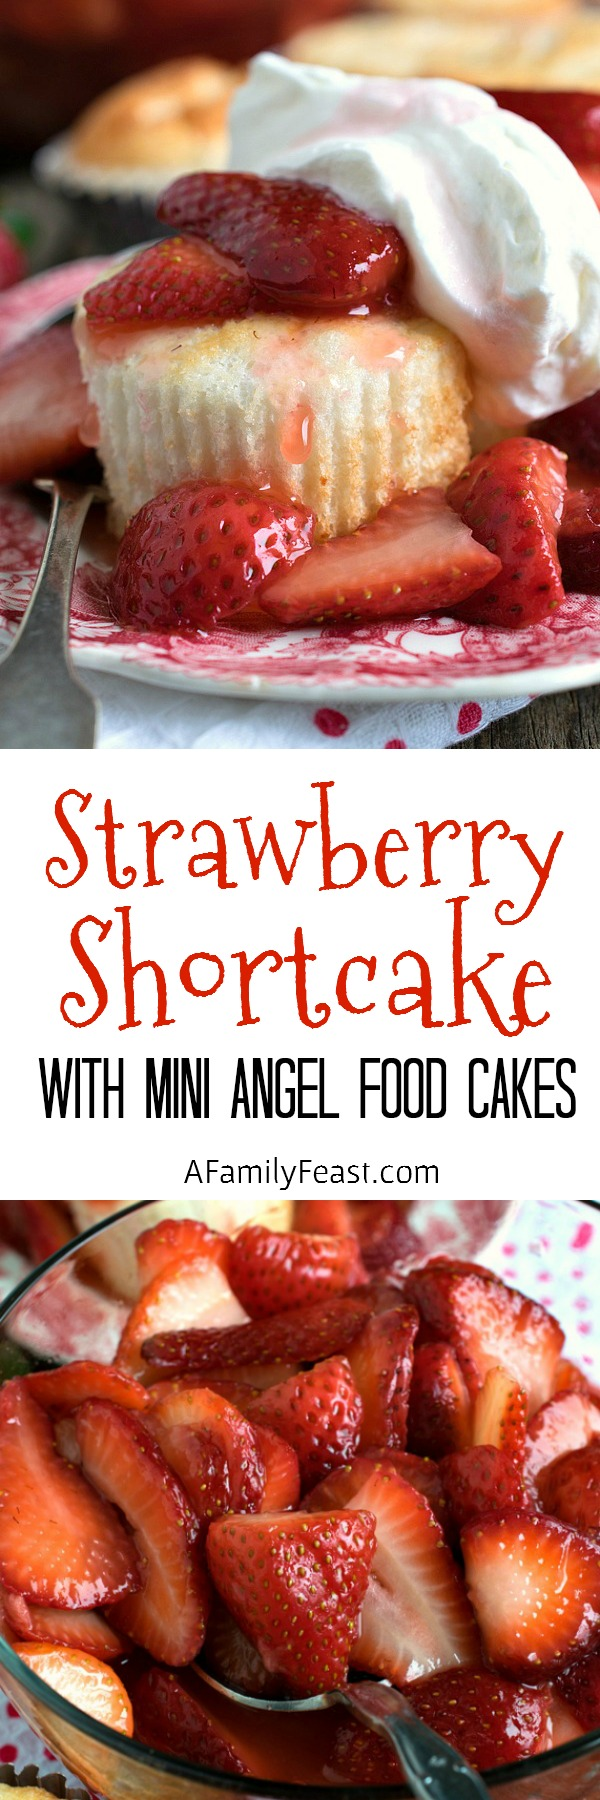 Strawberry Shortcake with Mini Angel Food Cakes - An easy and delicious way to prepare a classic strawberry dessert!